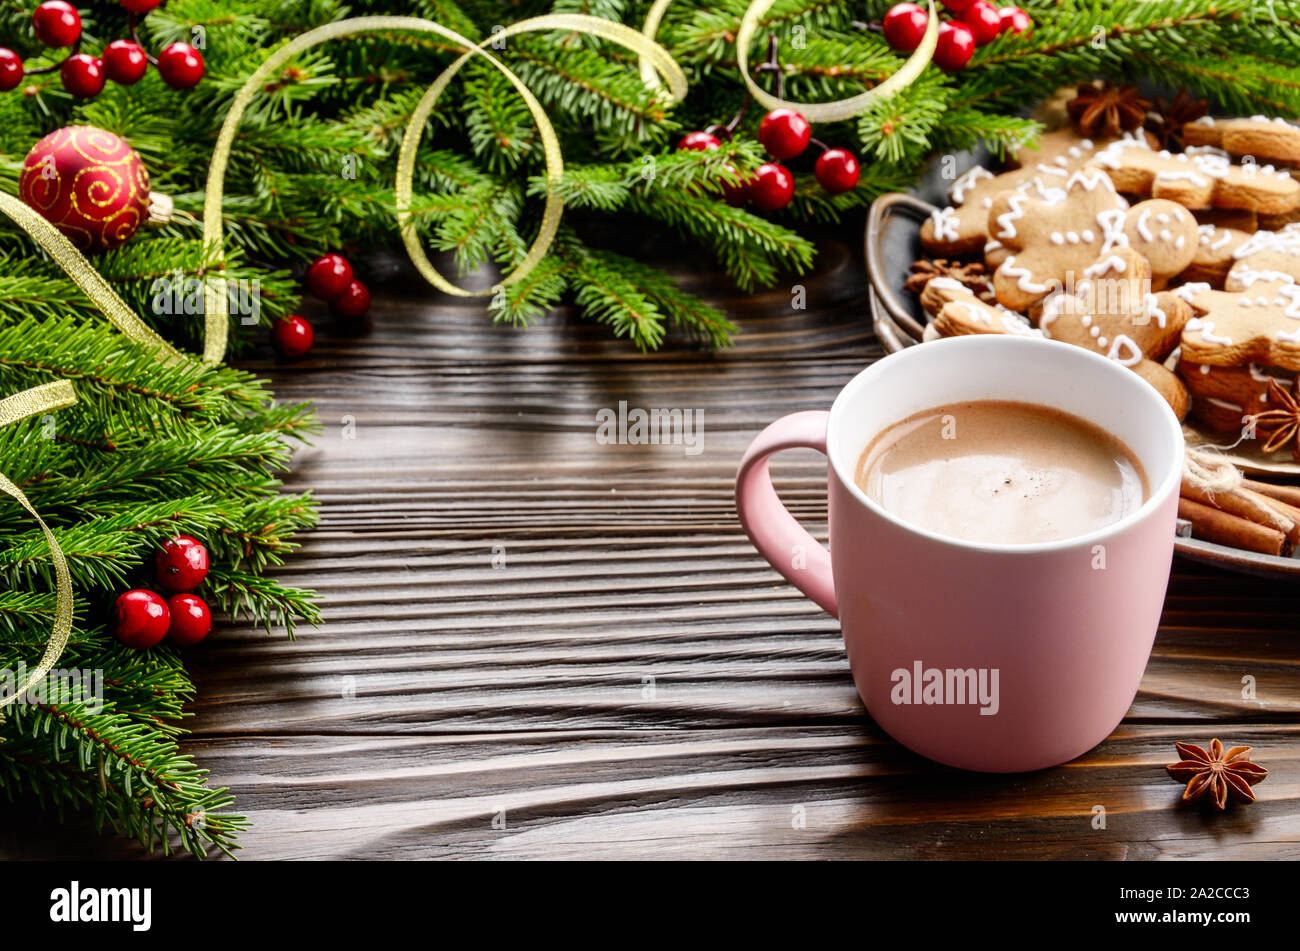 Christmas Background Of Pink Mug With Hot Chocolate Spruce Branch And Tray With Gingerbread Man Cookies On Wooden Table Stock Photo Alamy